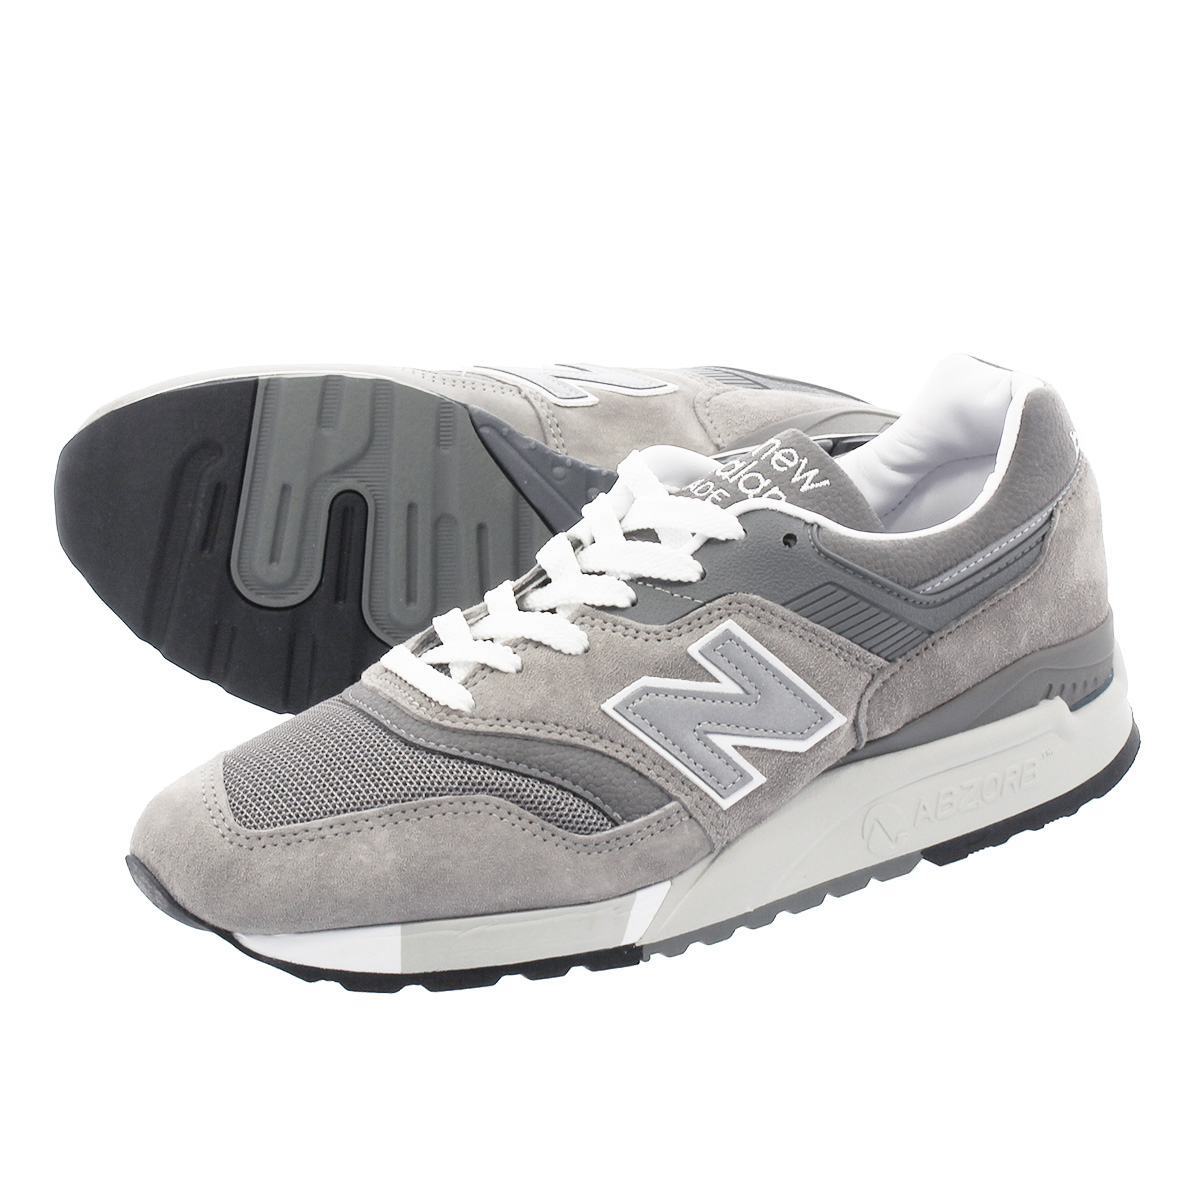 NEW BALANCE M9975GR 【MADE IN U.S.A.】 【Dワイズ】 ニューバランス M9975GR GREY